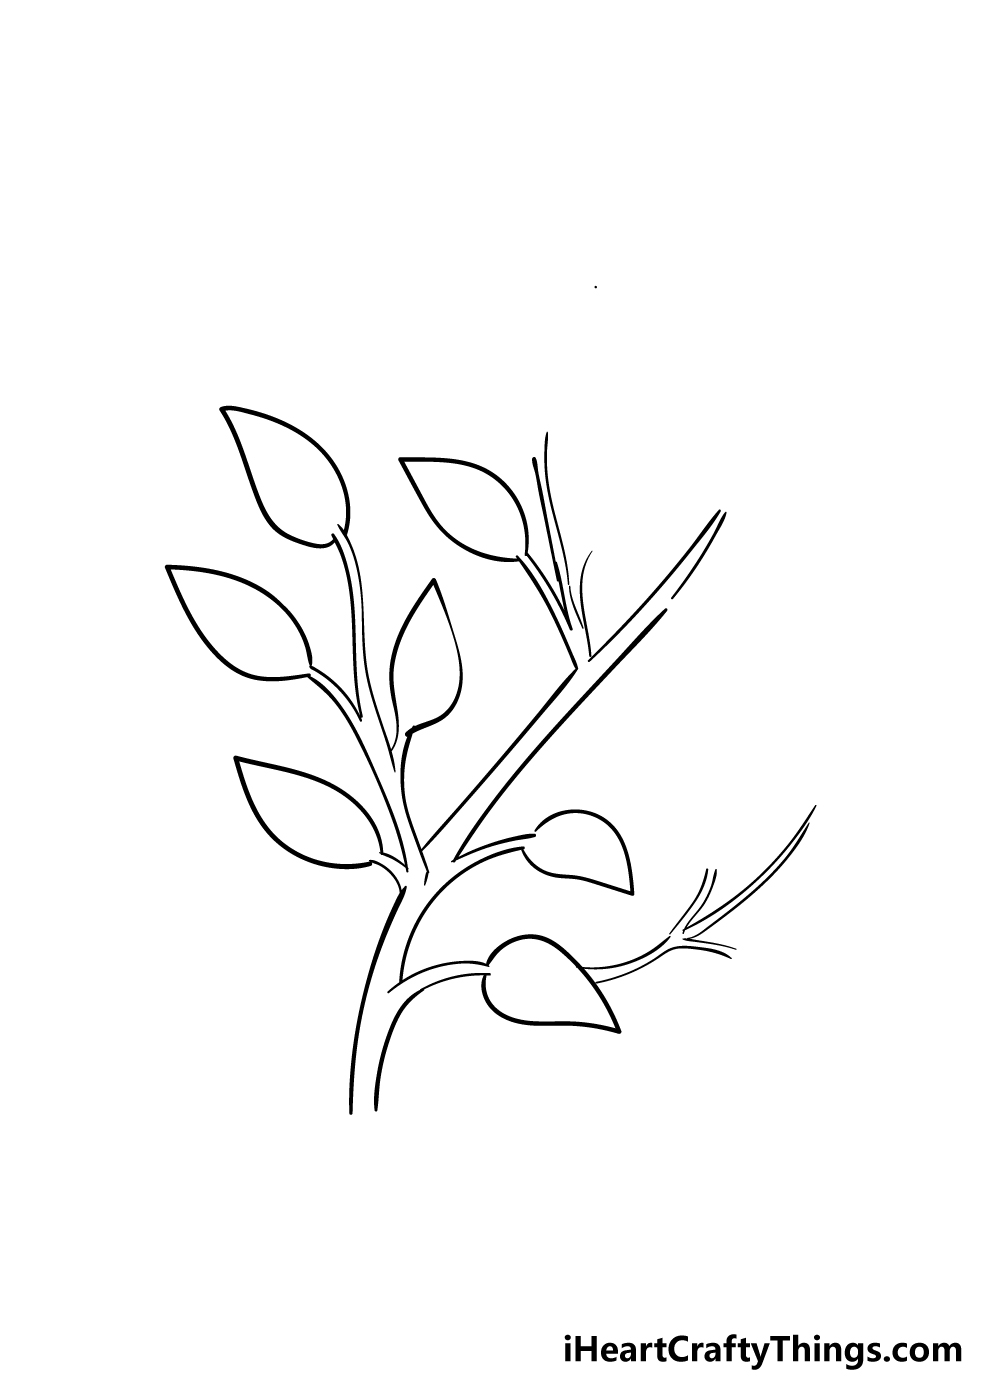 leaves on a tree drawing step 4